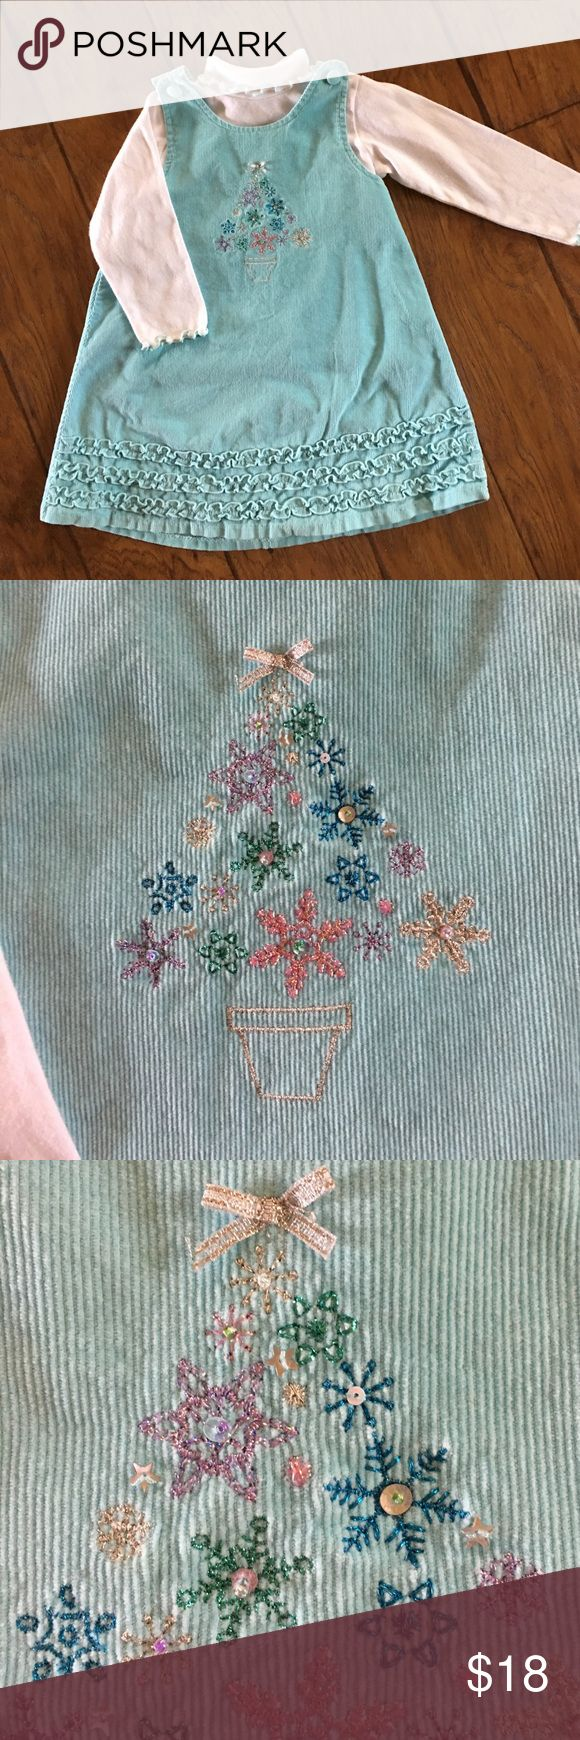 ⭐️VINTAGE LOOK CORDUROY CHRISTMAS JUMPER DRESS ⭐️ EUC, mint green with a bedazzled Christmas tree on dress. Matching unattached turtle neck. So darling 💕 Sophie Rose Dresses Casual